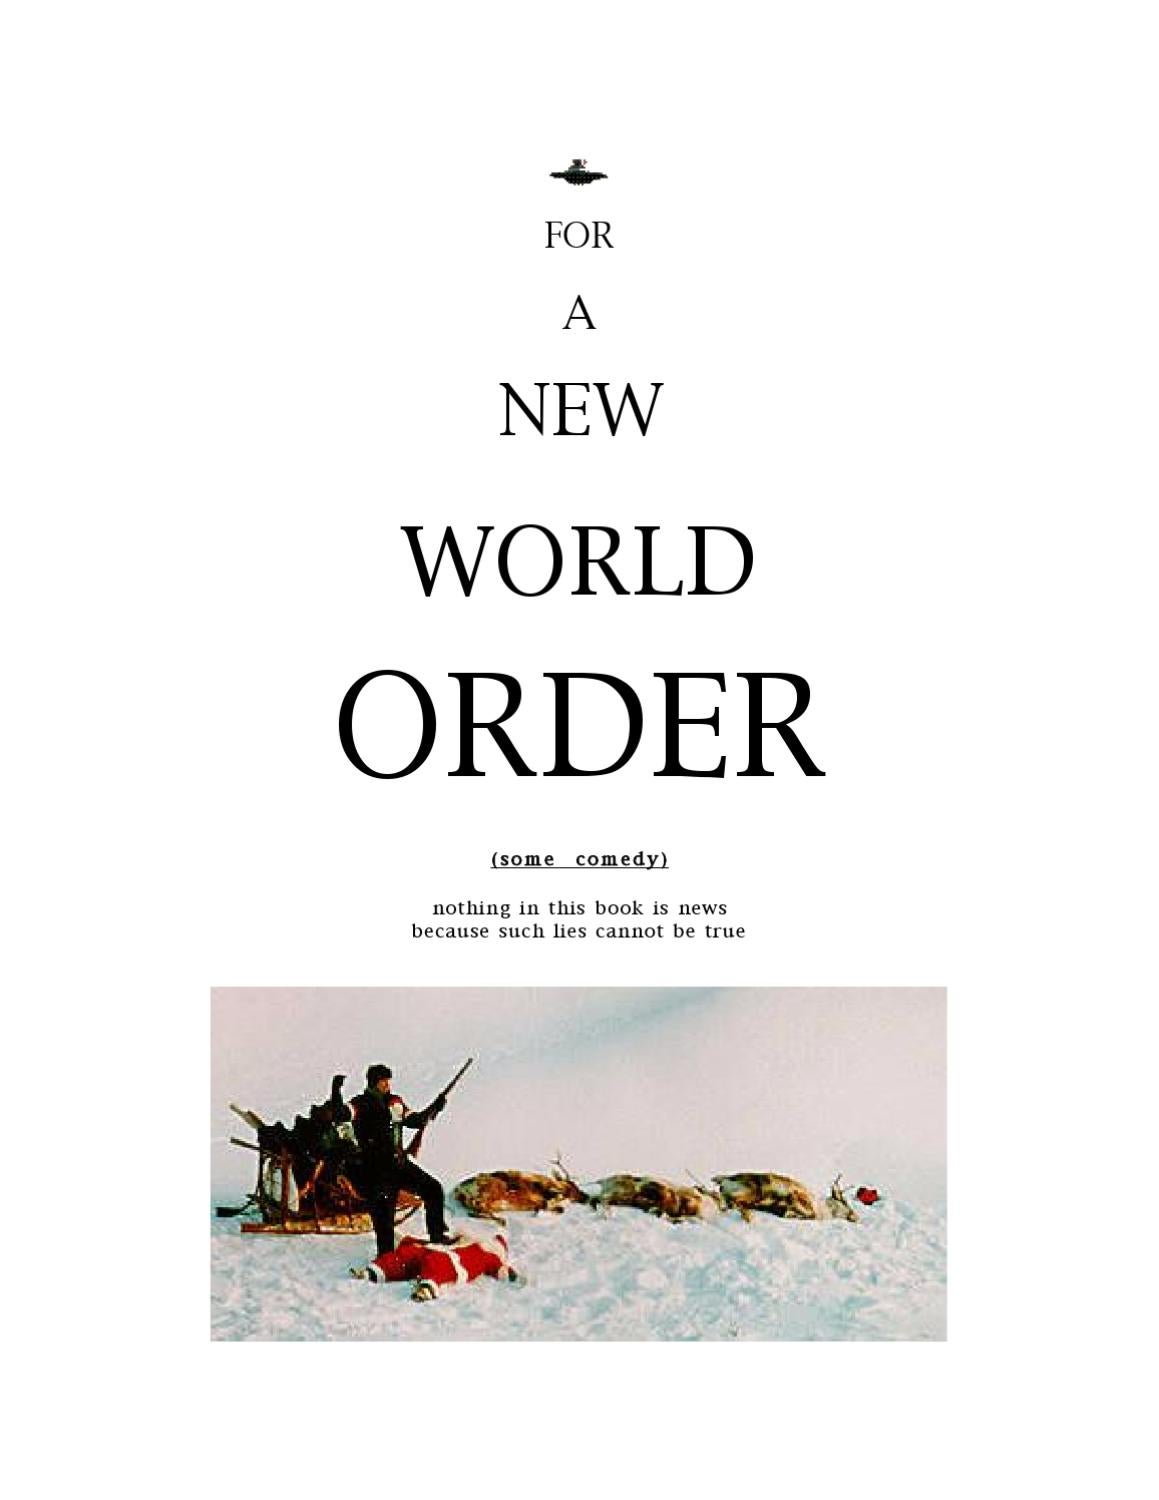 For A New World Order: Some Comedy by Rev Jonathan Barlow Gee - issuu